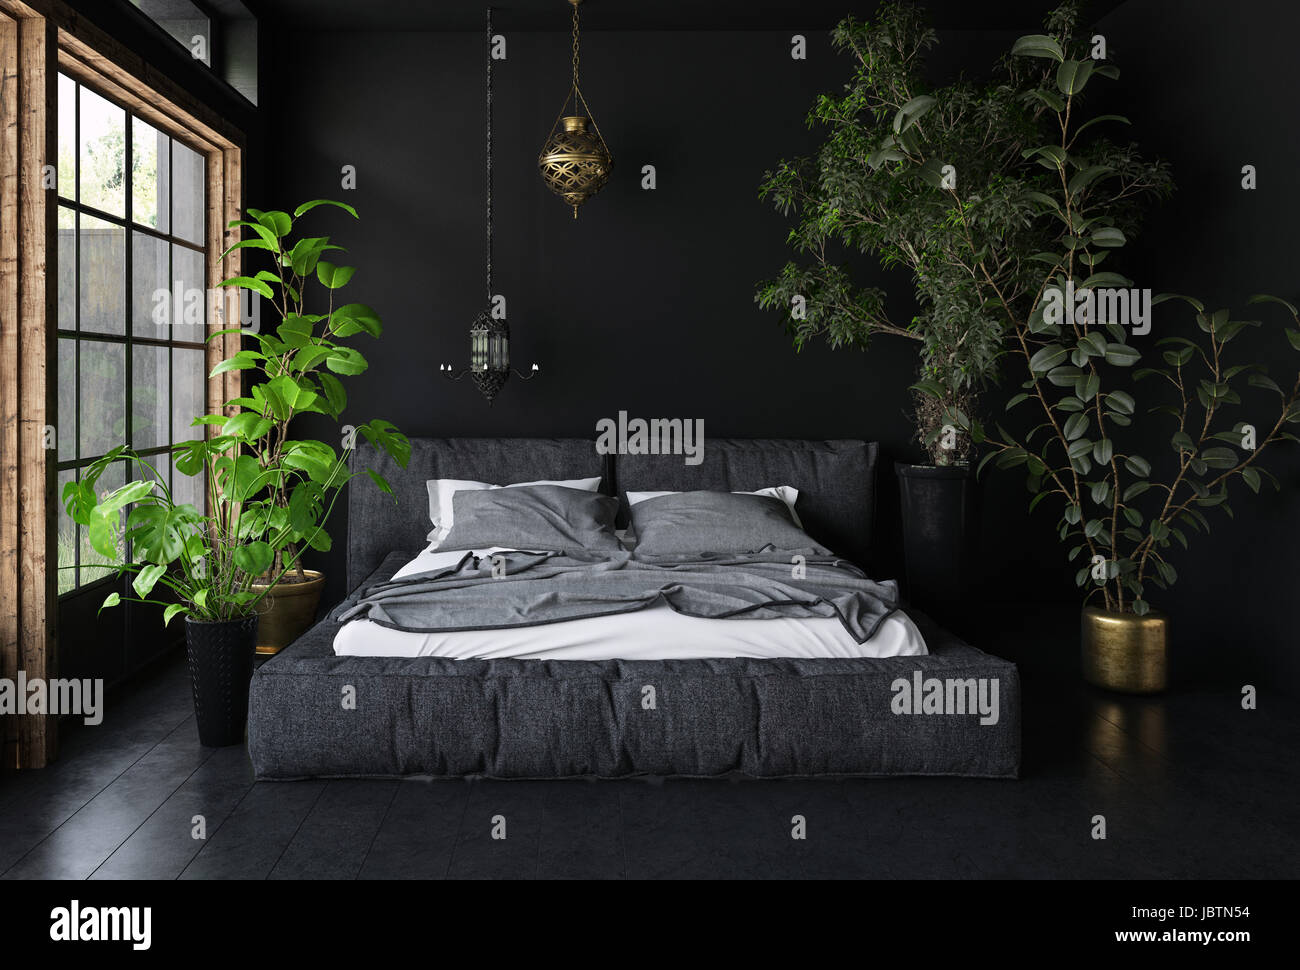 Wide Bed In Dark Room With Black Walls And Floor, Tall Potted Plants And  Big Window   Interior Design Concept. 3d Rendering